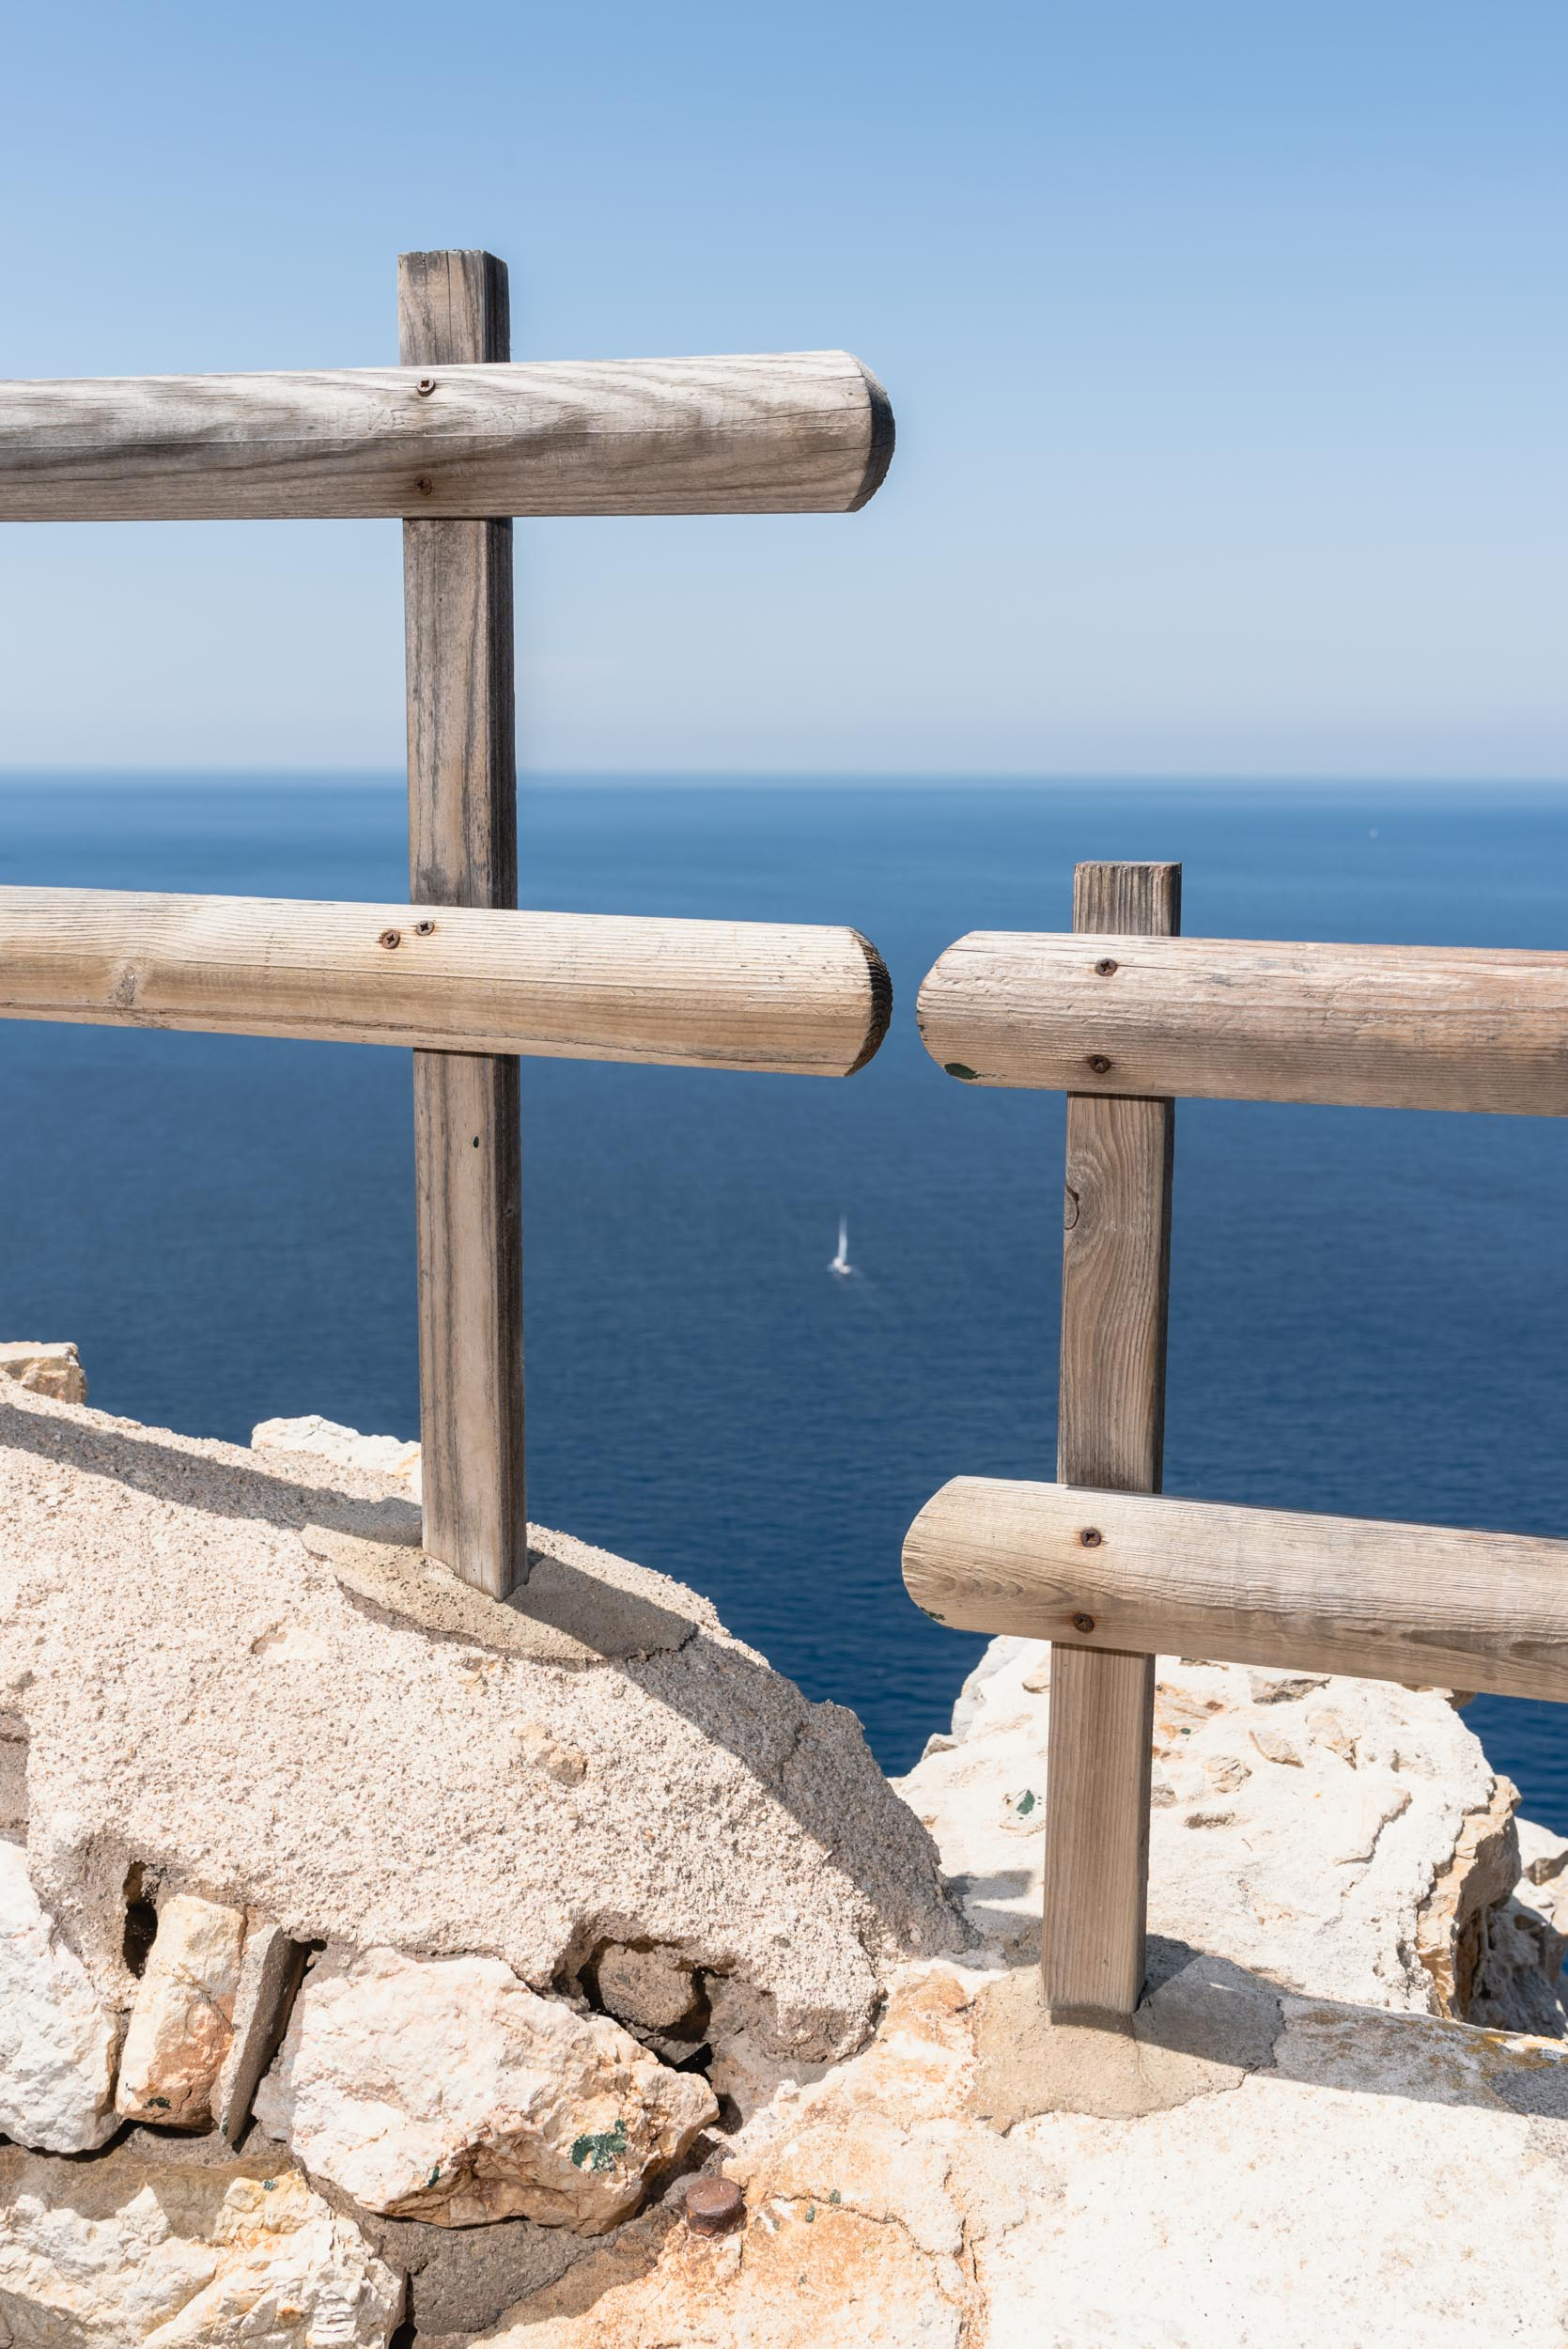 Ocean through railing Cap Formentor